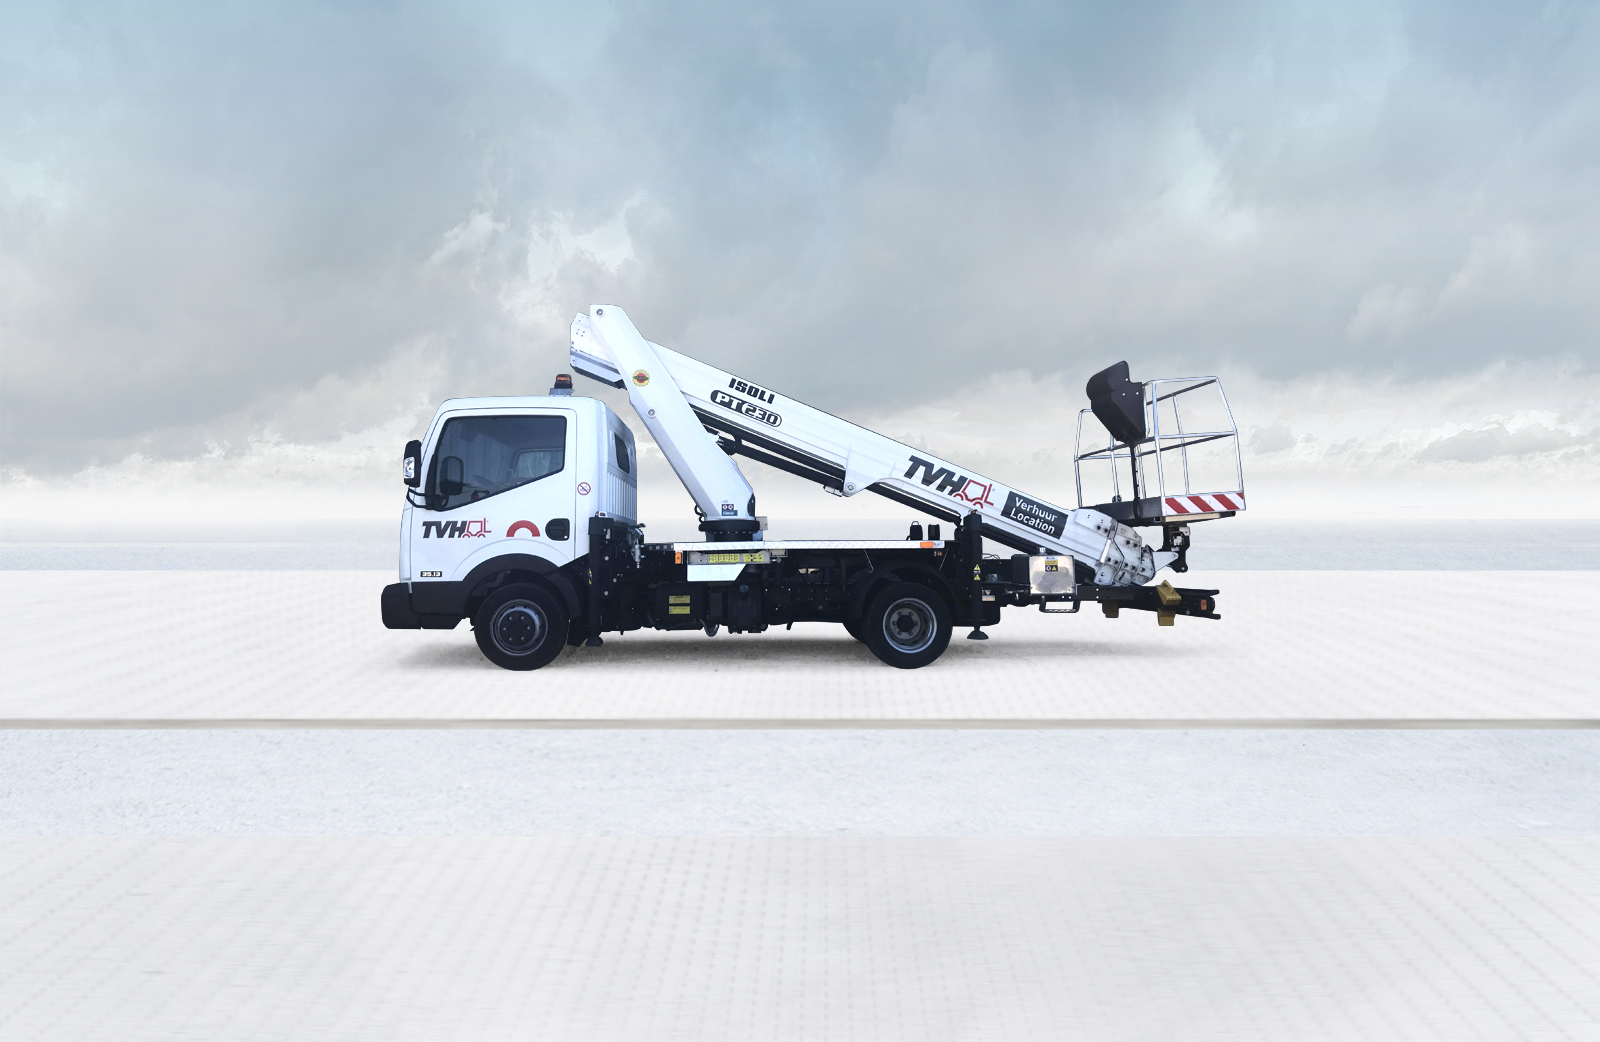 Truck-mounted aerial work platforms